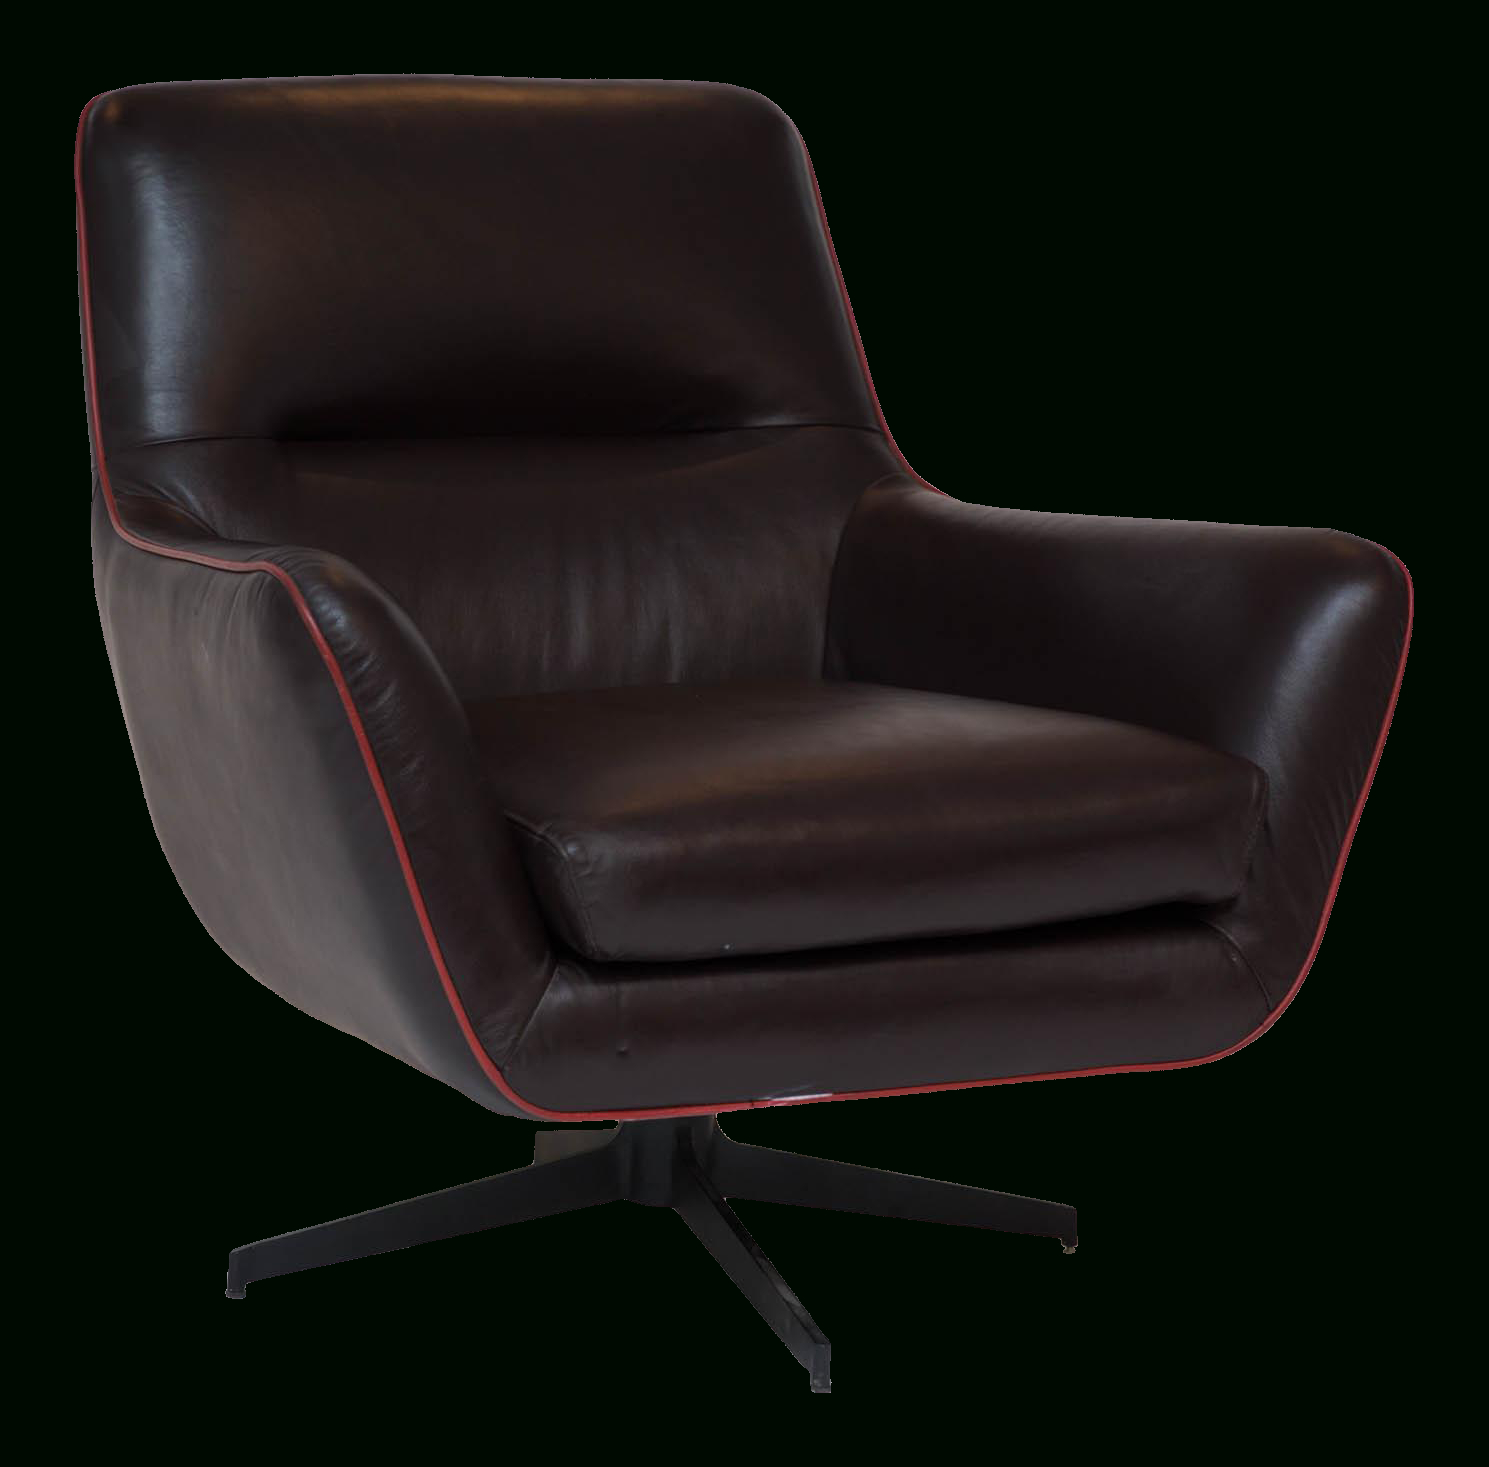 Clean Brown Leather Swivel Chair Trimmed In Red Leather Piping (View 3 of 25)